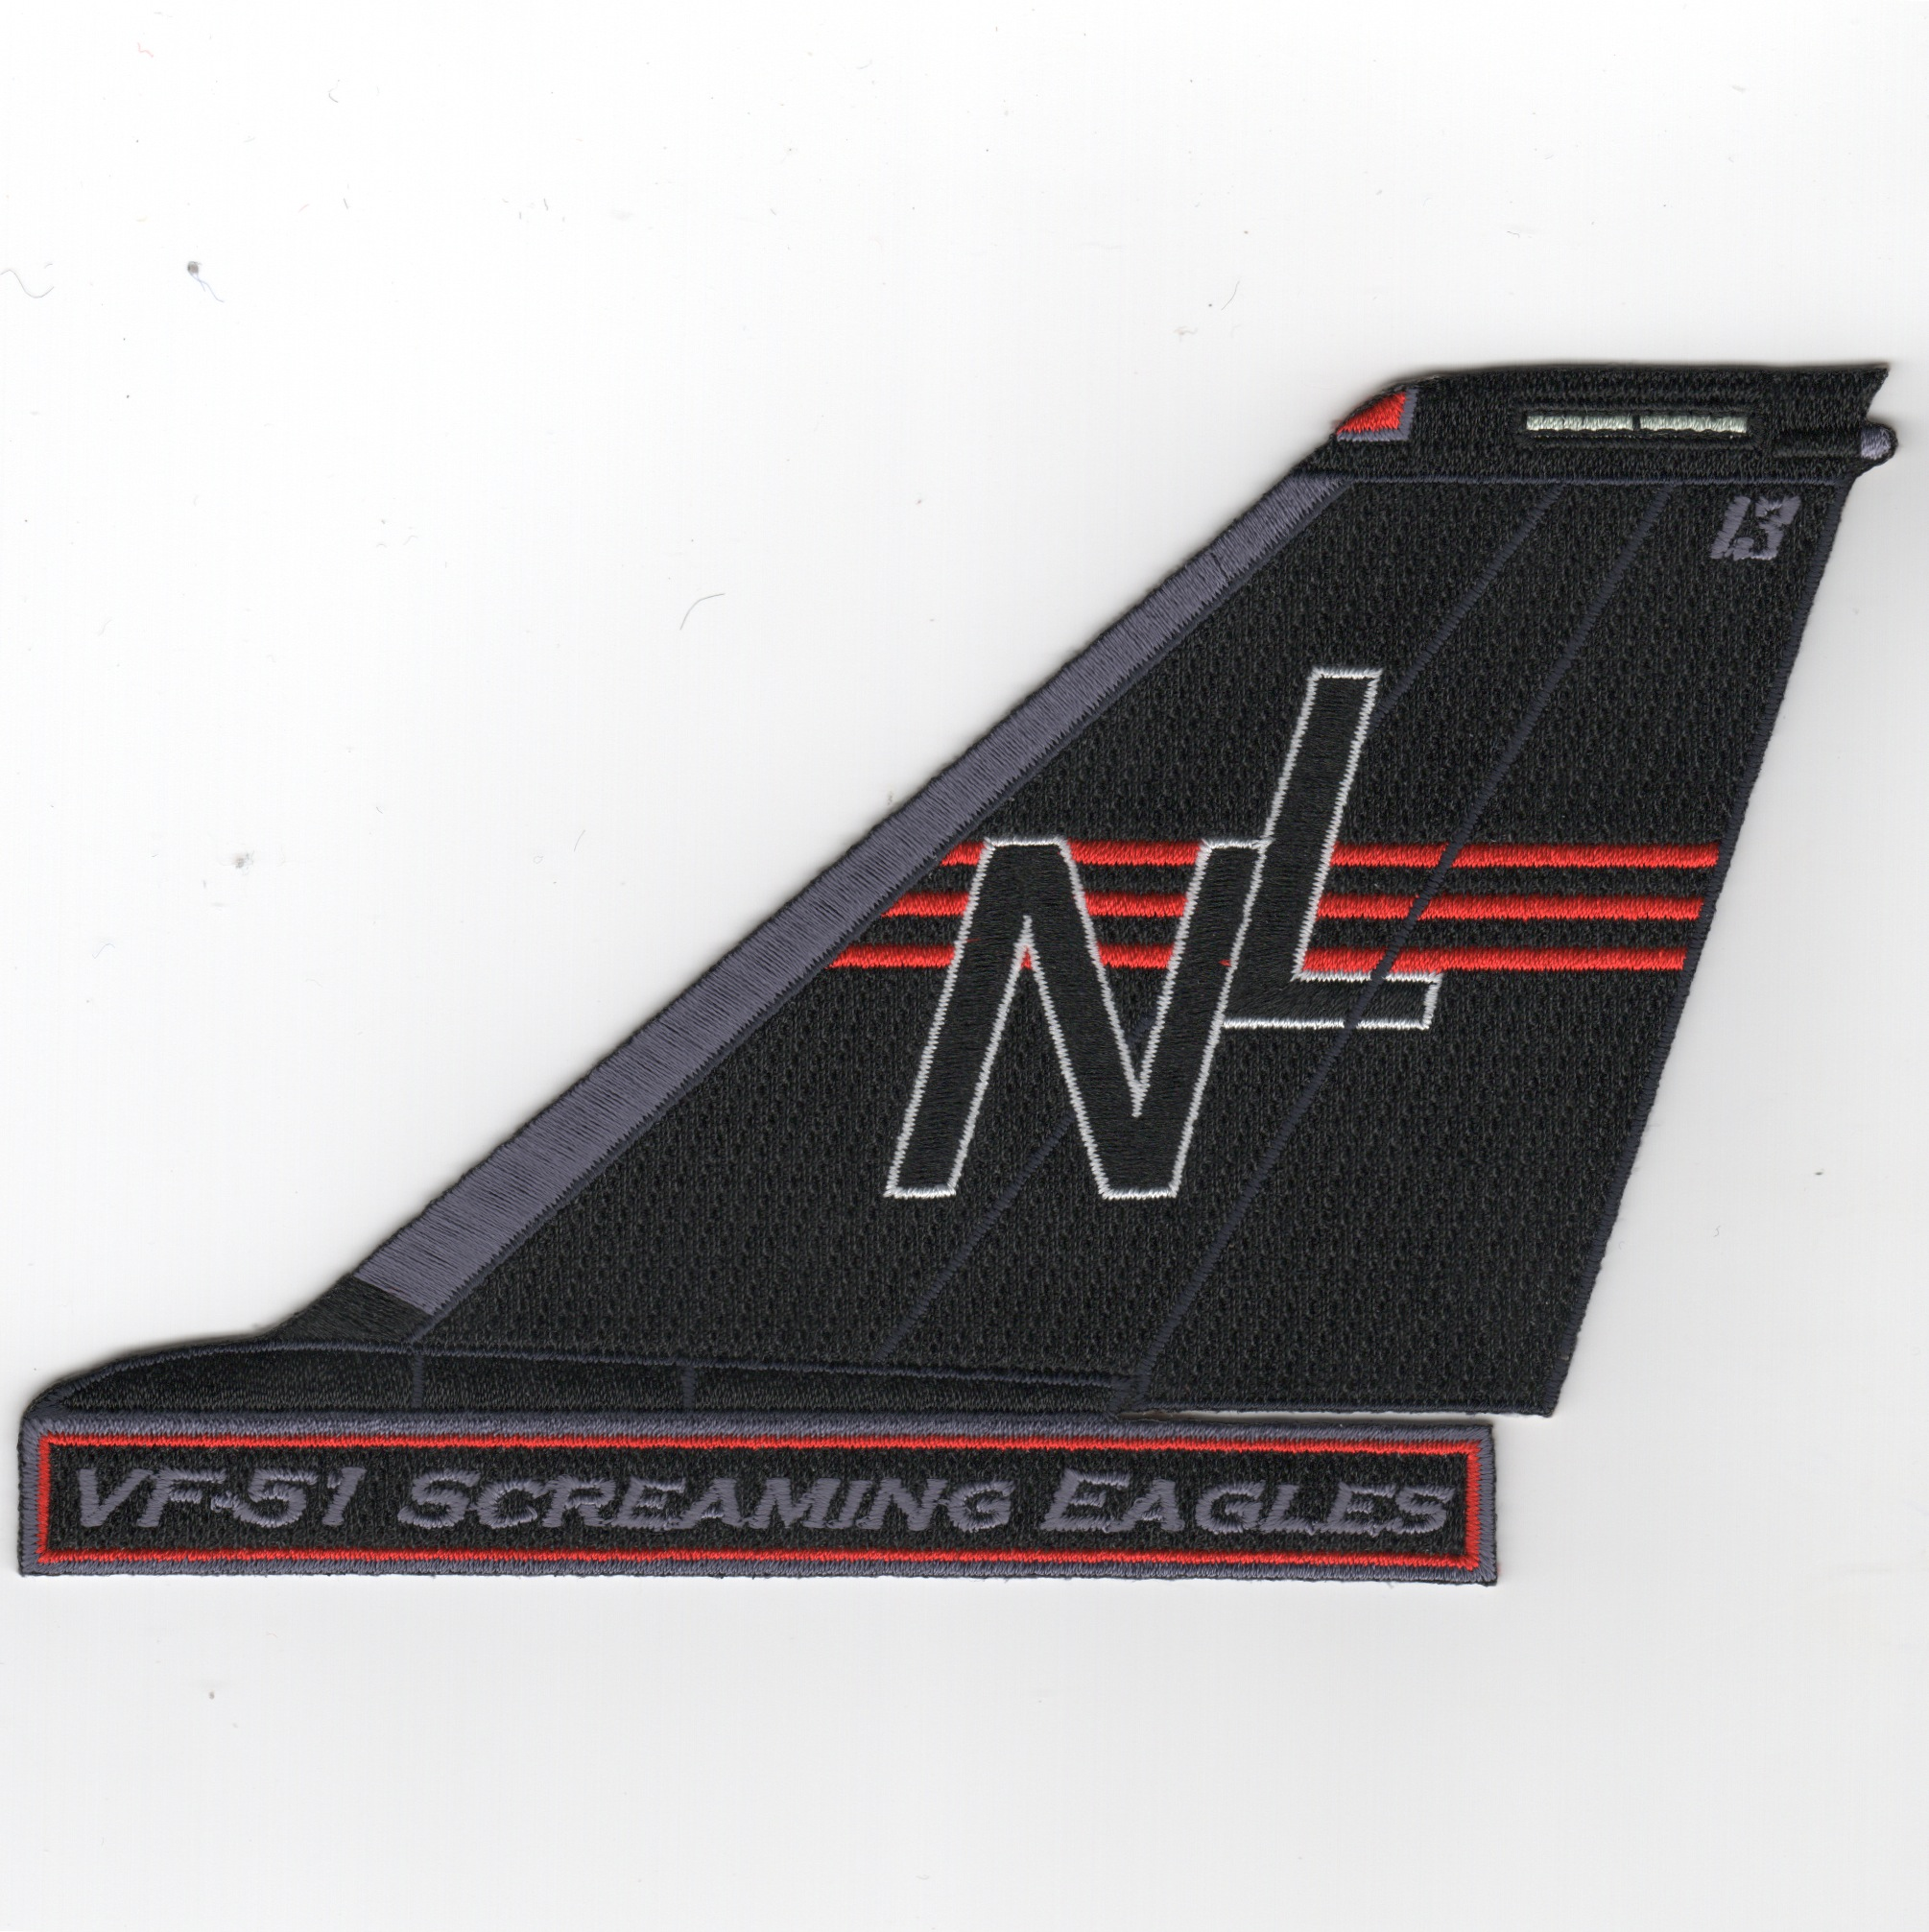 VF-51 F-14 Tomcat TailFin (Text)